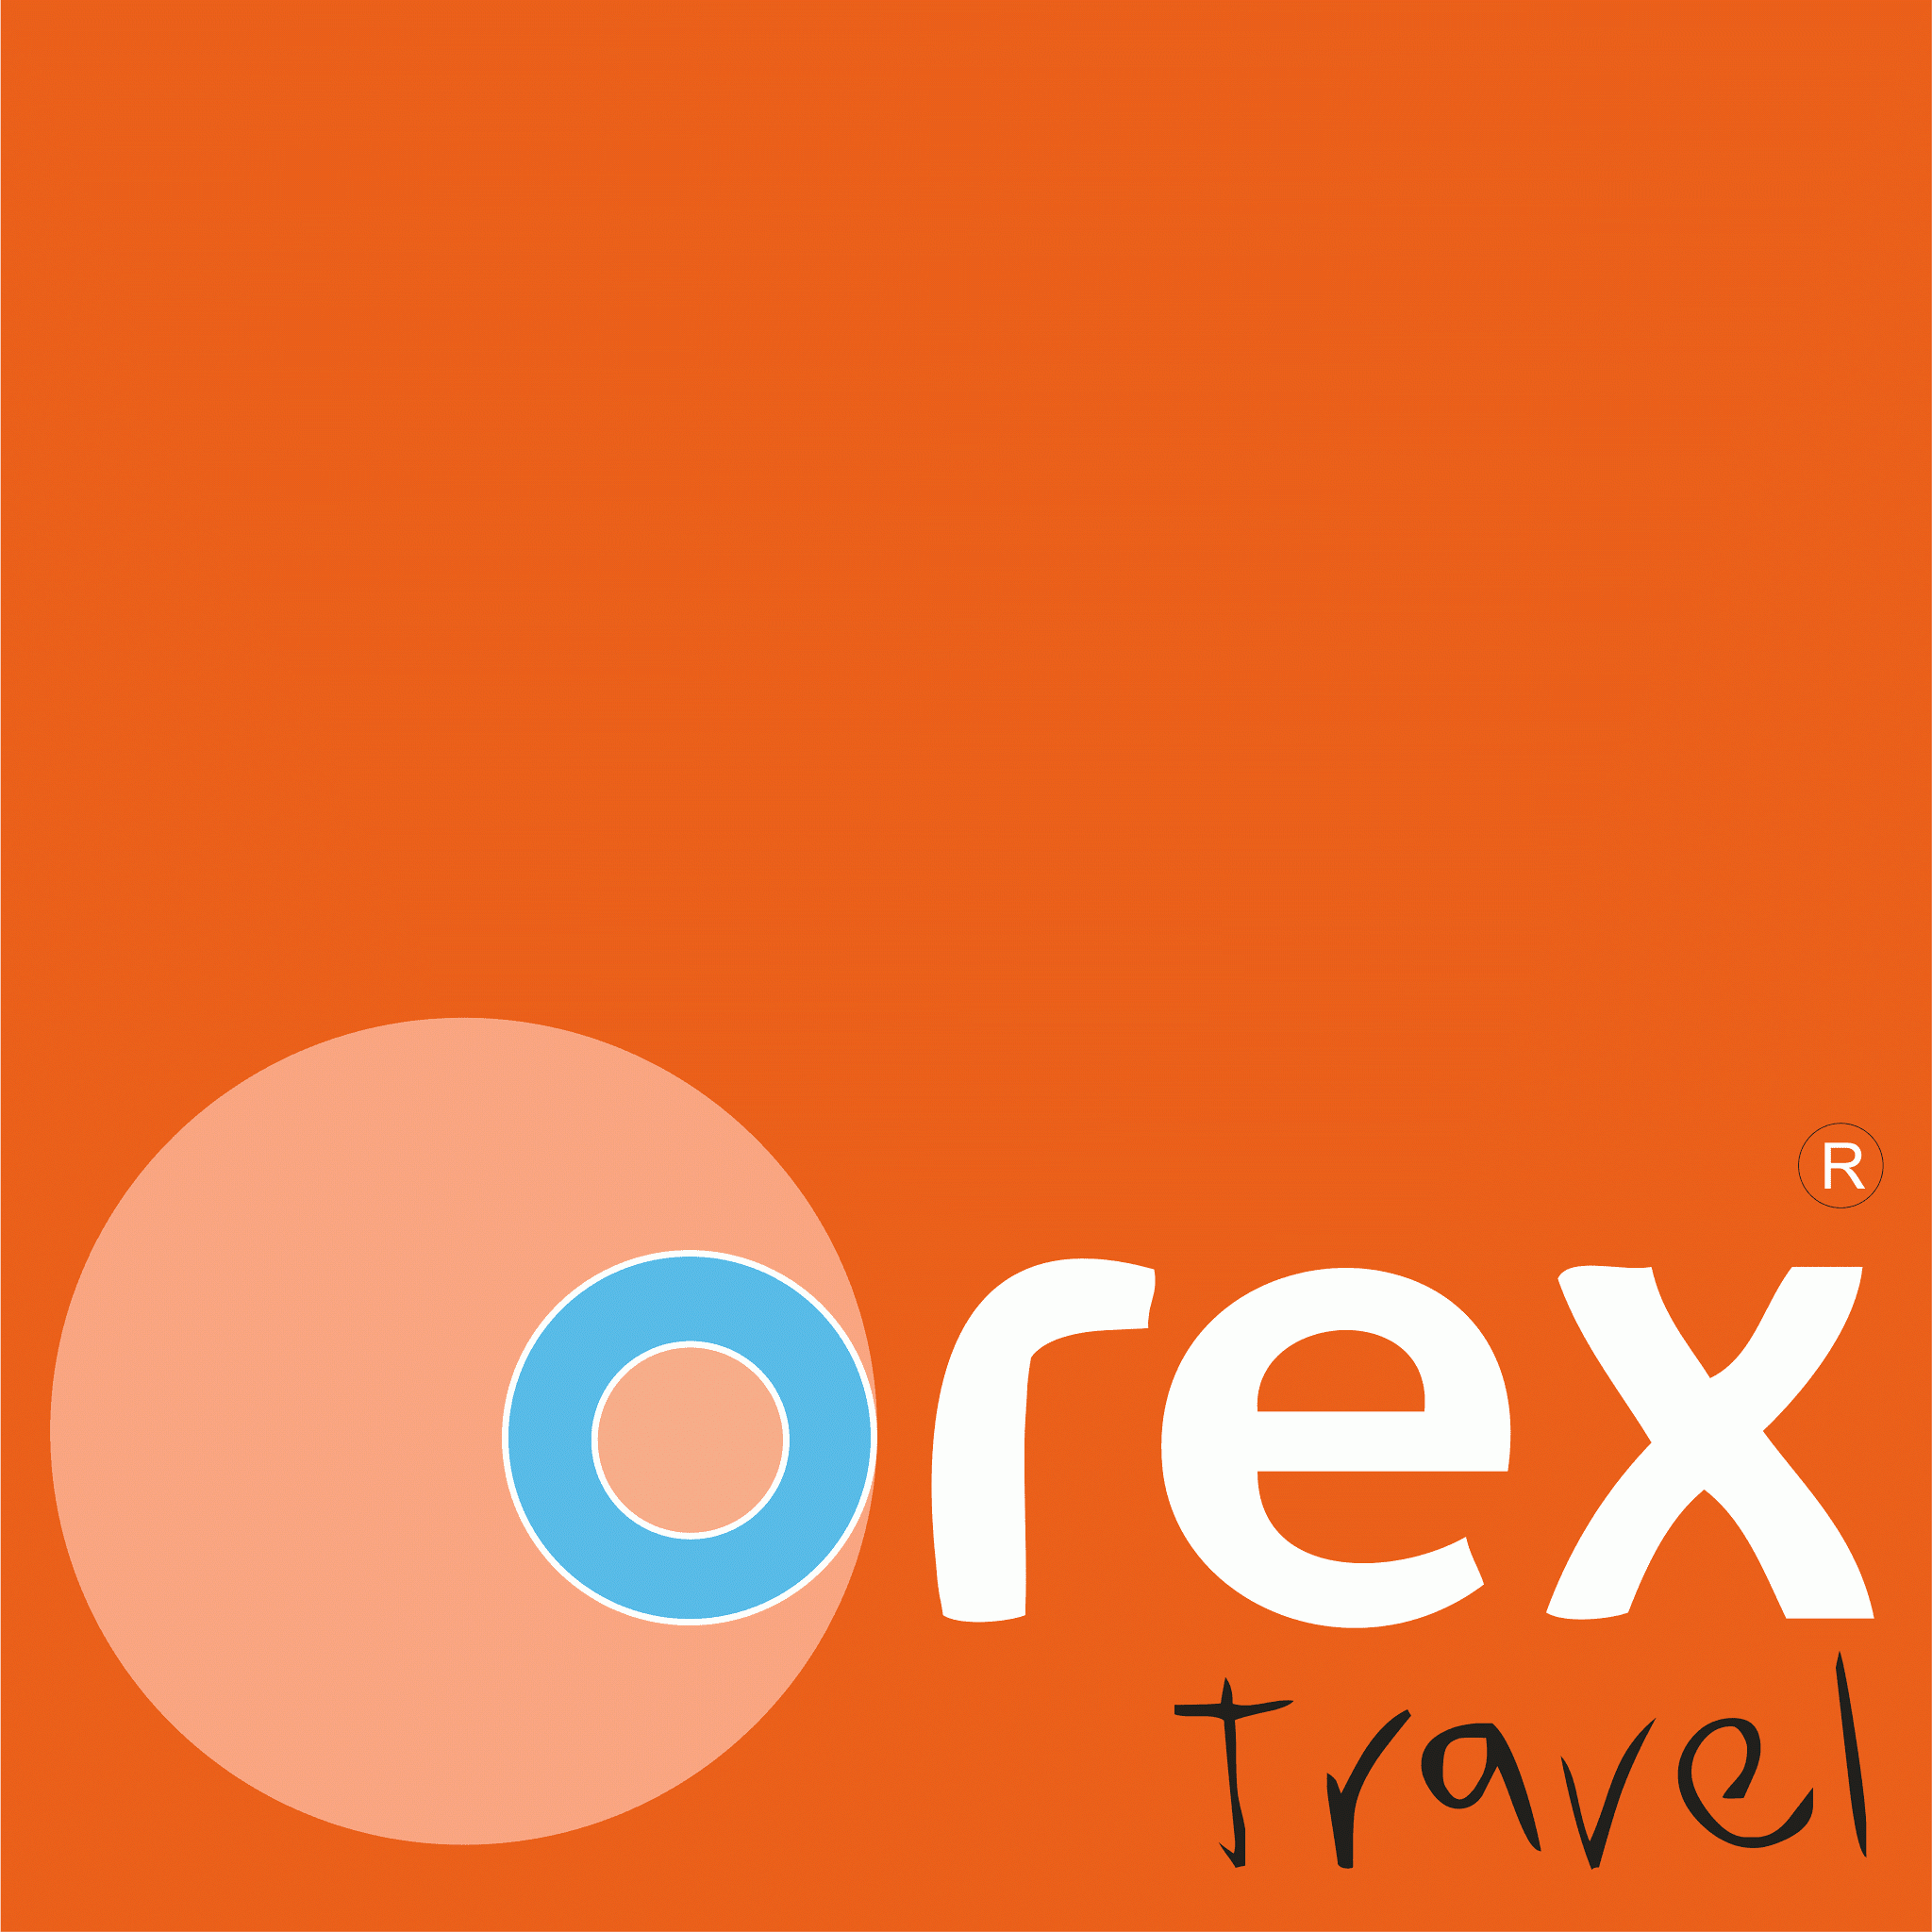 orex travel logo